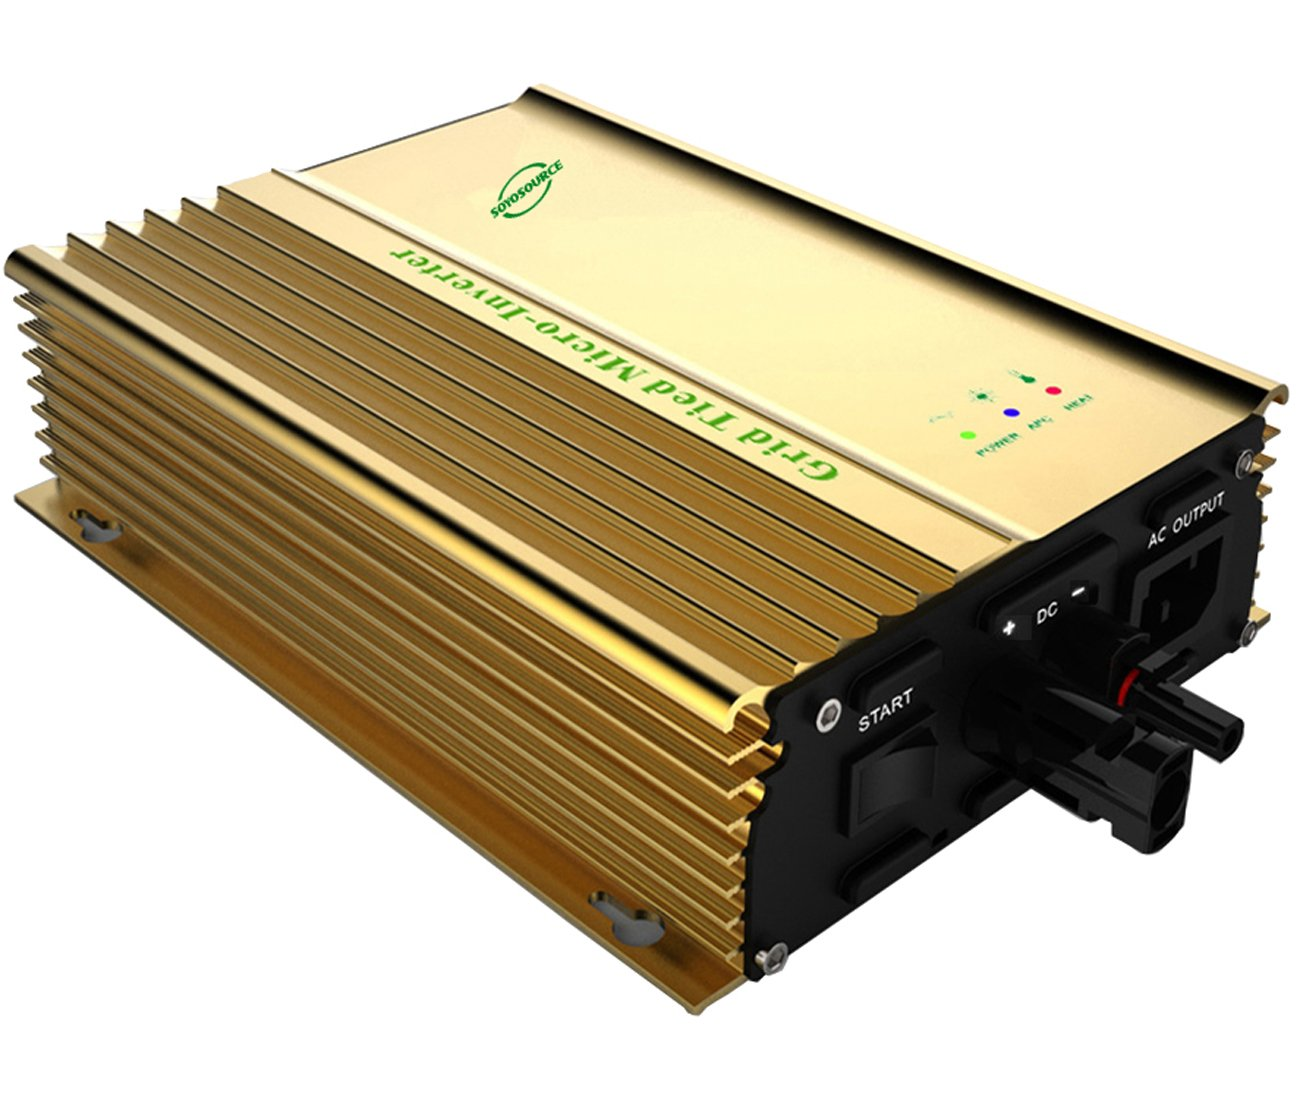 SOYOSOURCE 500 watt Inverter for 48v Battery high Efficiency Grid tie Micro Inverter for Solar Panels Open Voltage 50~86V or 48V Battery Pure Sine Wave Home invertor(500W PV-Input:50V-86V) by SOYOSOURCE (Image #2)